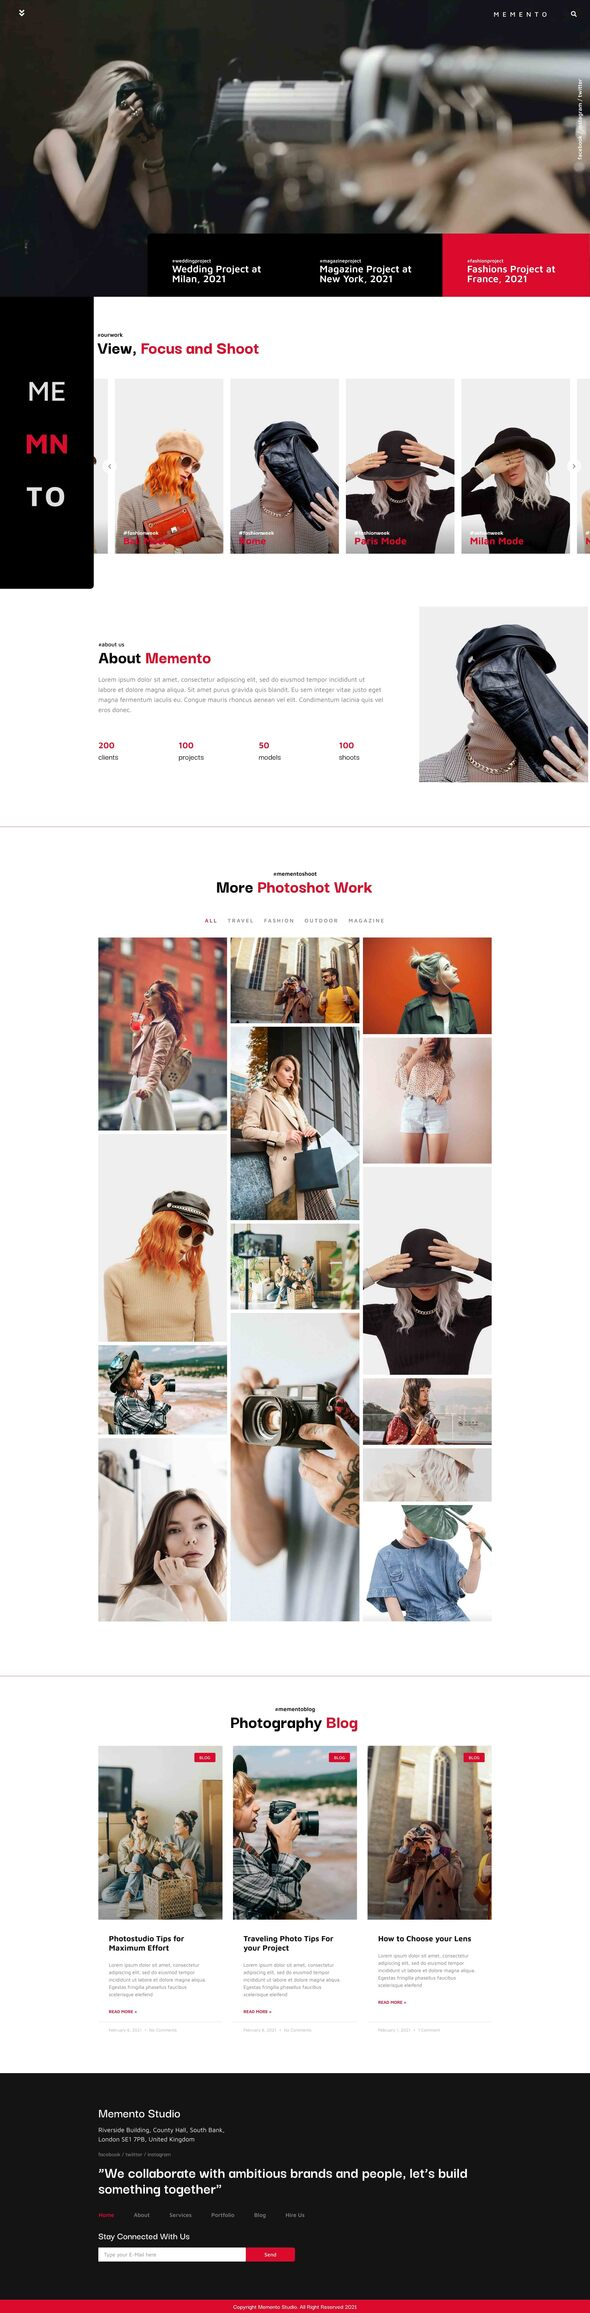 Memento - Photography amp Blog Elementor Template Kit TFx